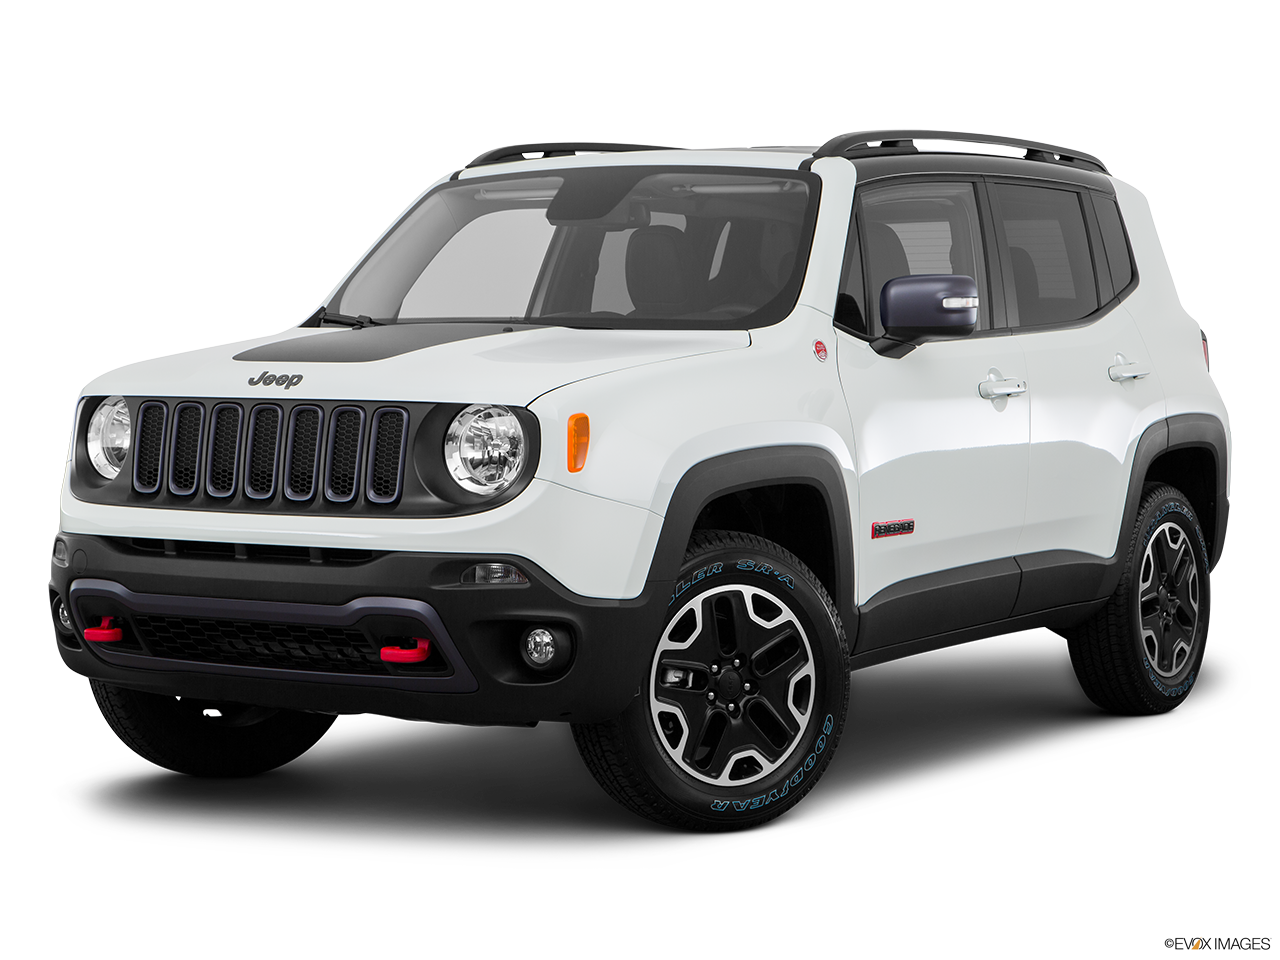 Test Drive A 2016 Jeep Renegade at Moss Bros Chrysler Dodge Jeep Ram San Bernardino in San Bernardino